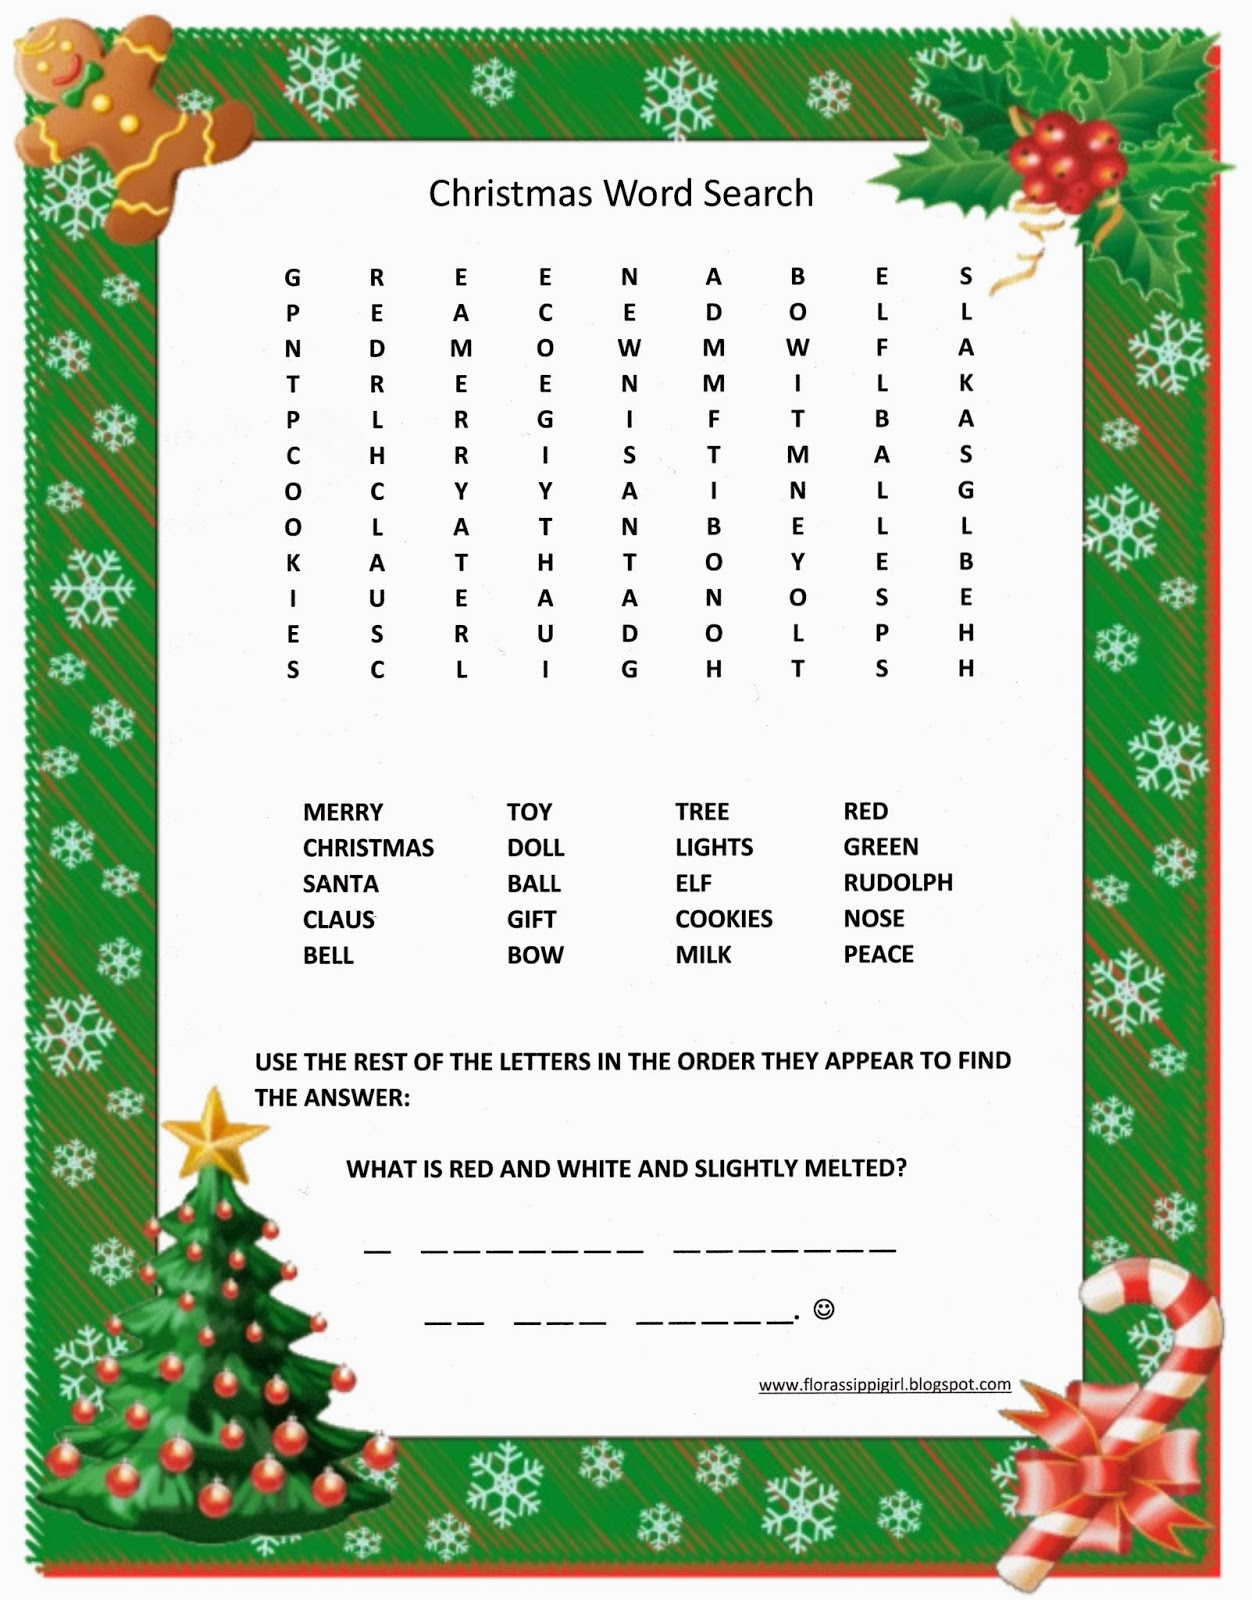 Florassippi Girl Christmas Word Search